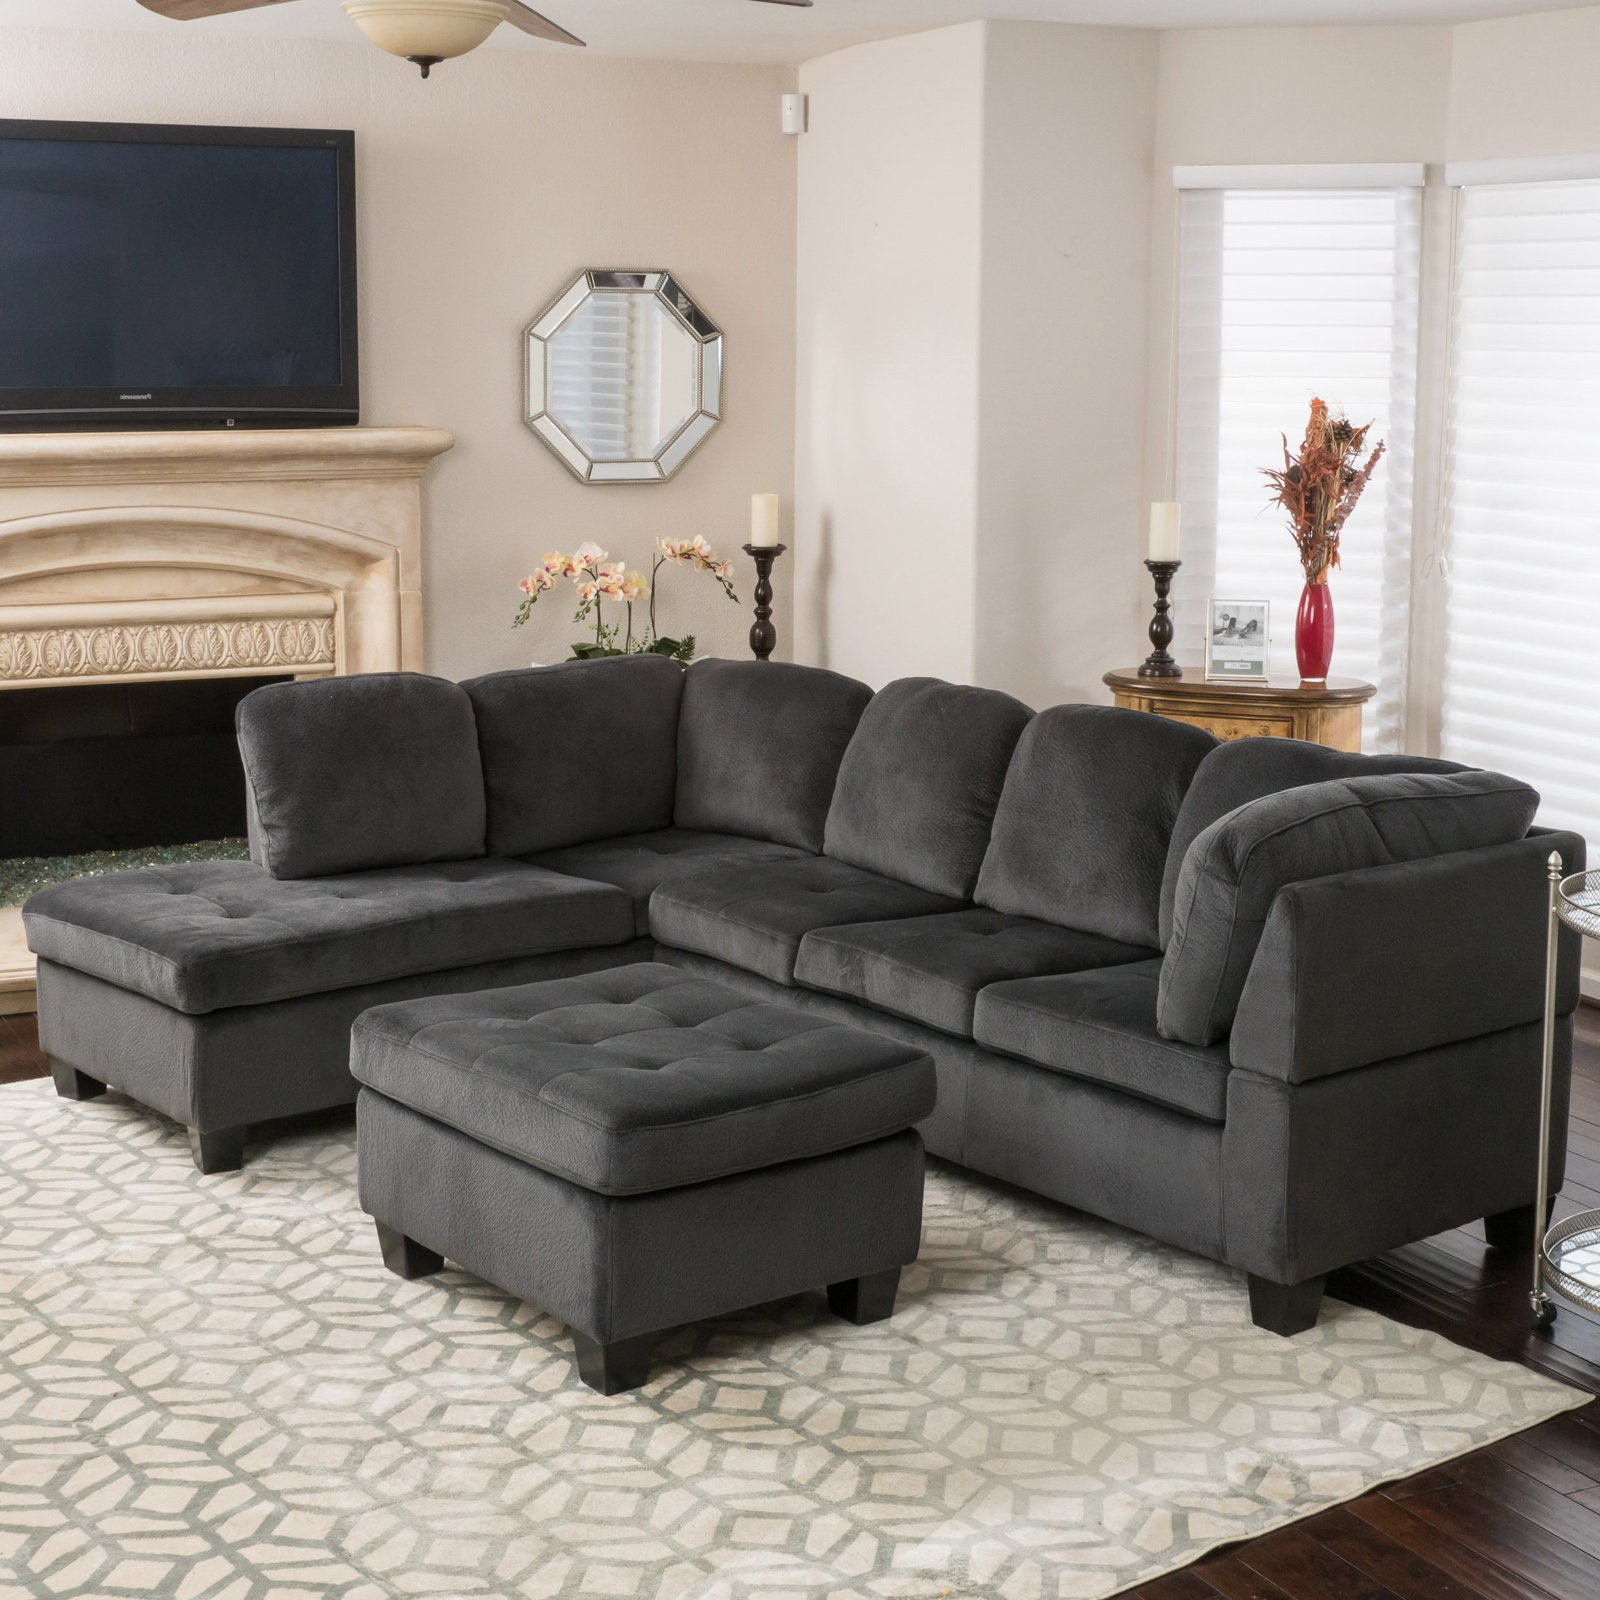 Evan 3 Piece Sectional Sofa (View 10 of 20)